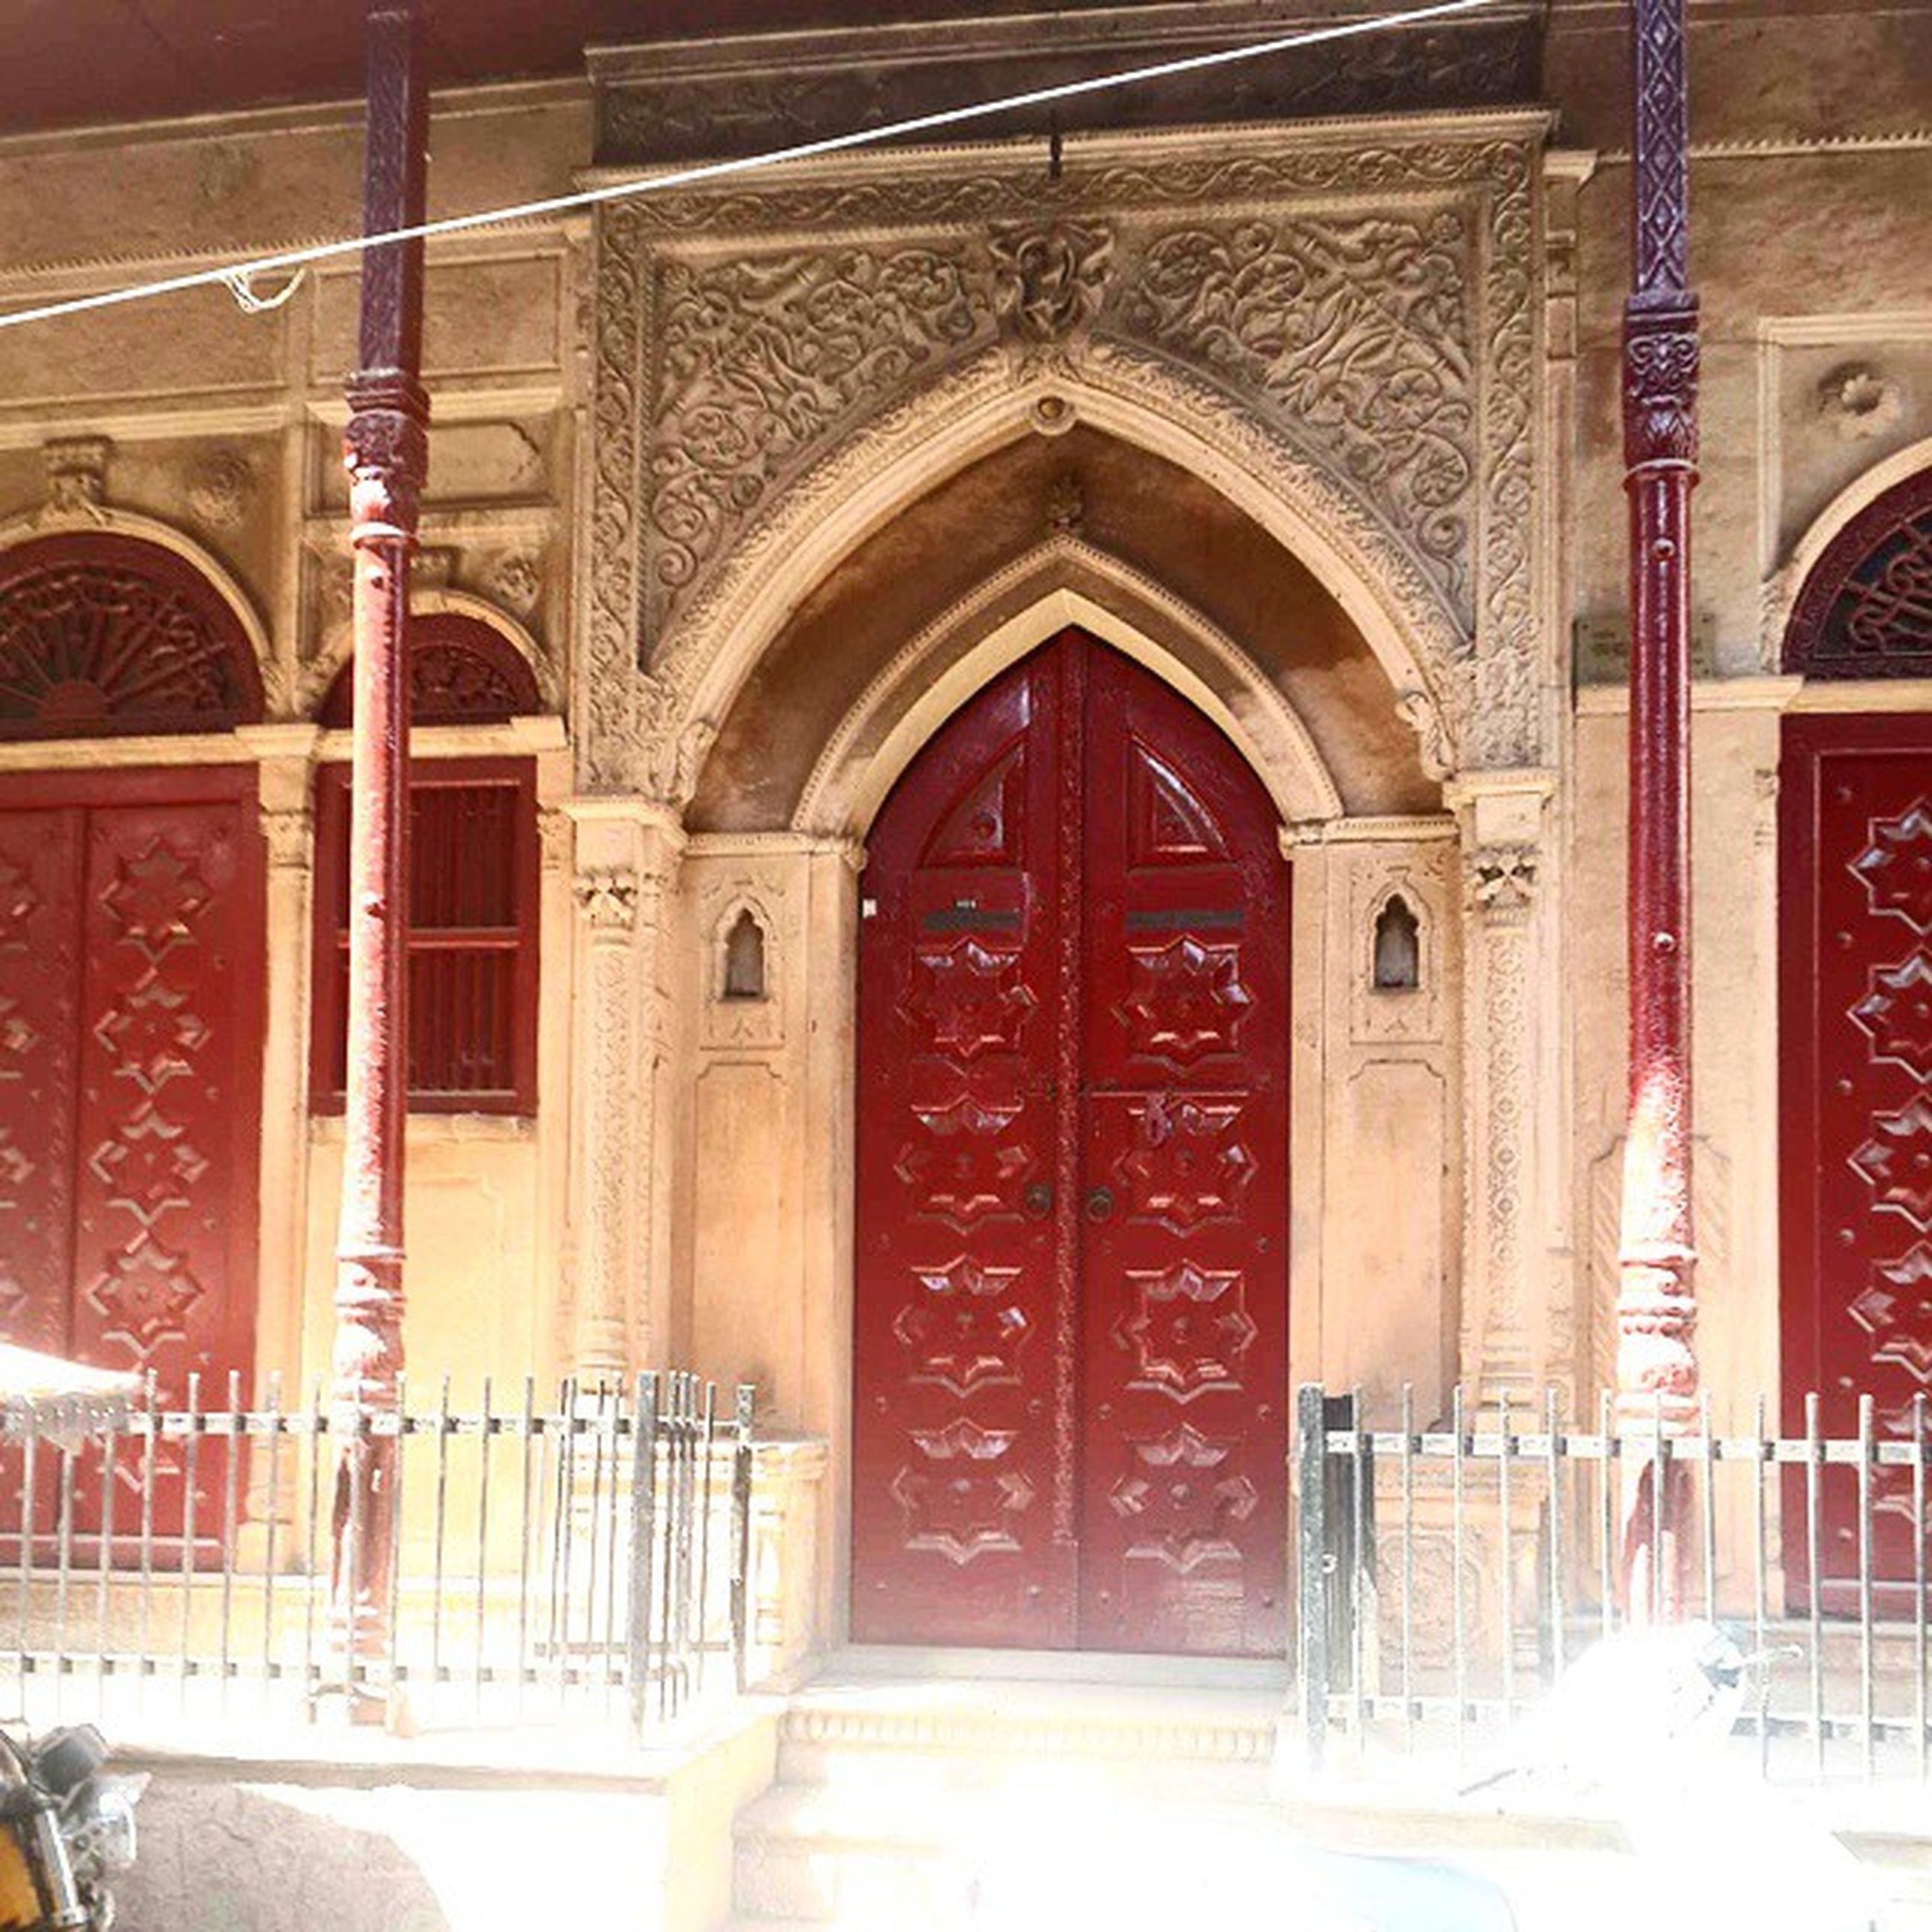 arch, architecture, built structure, indoors, red, door, religion, place of worship, entrance, church, spirituality, closed, wood - material, architectural column, building exterior, day, reflection, window